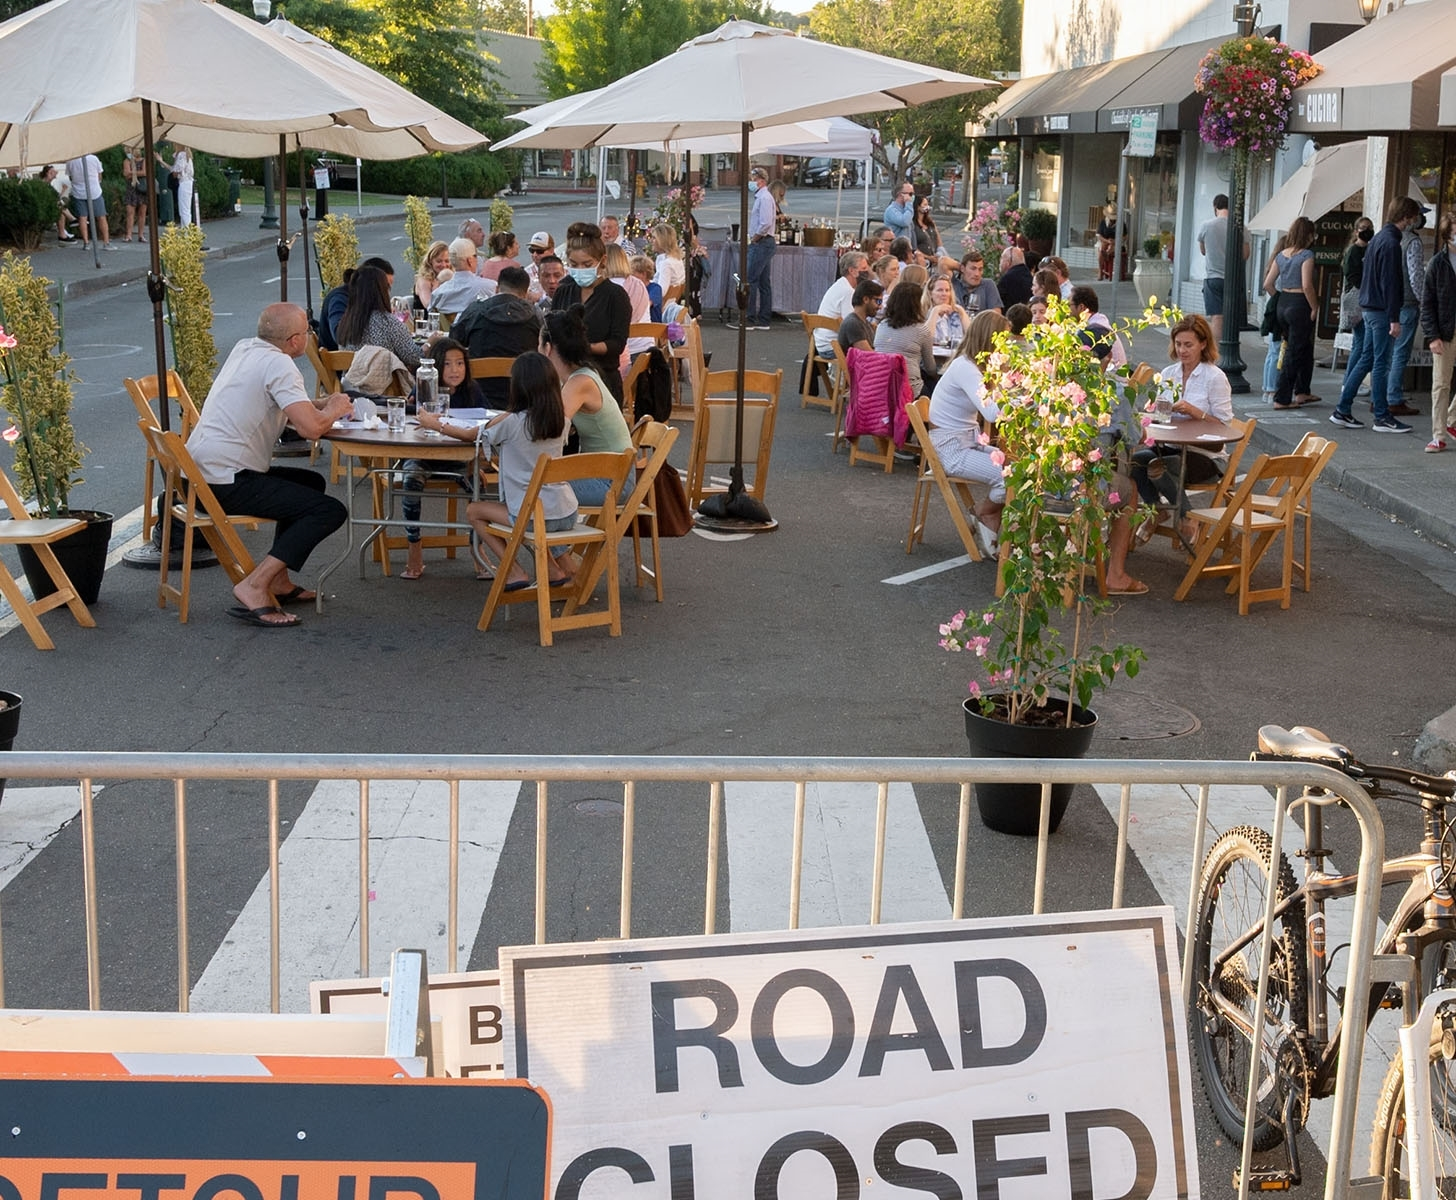 Covid-19-Marin-3-In-mid-July-restaurants-learned-how-to-safely-re-open-to-the-public-by-setting-tables-in-streets-and-parking-lots-JM-Place-by-Bill-Sumits-MR